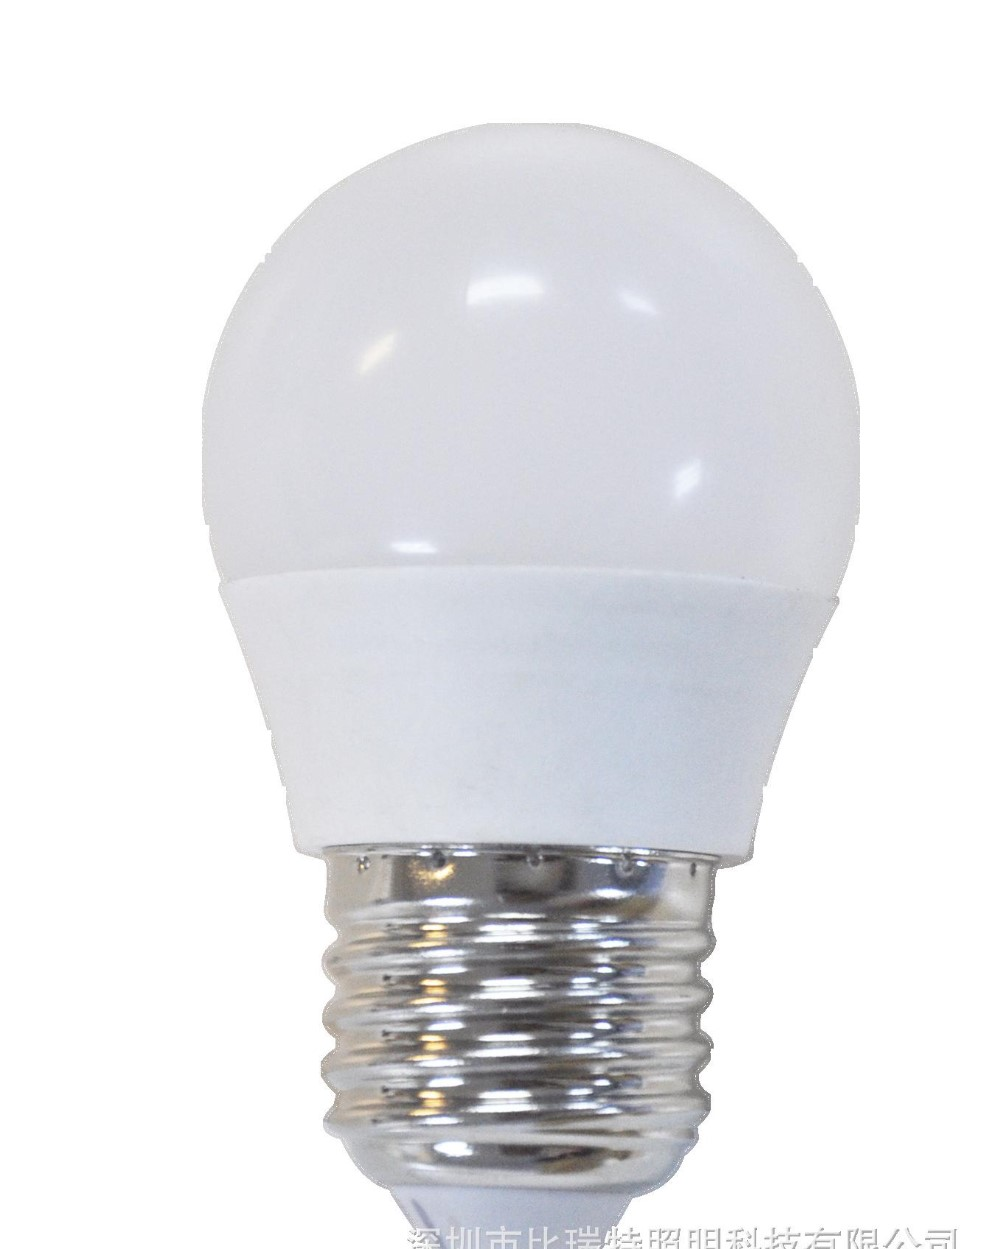 LED Light Source and Bulb Lights Item Type 5/7W LED Bulbs G45